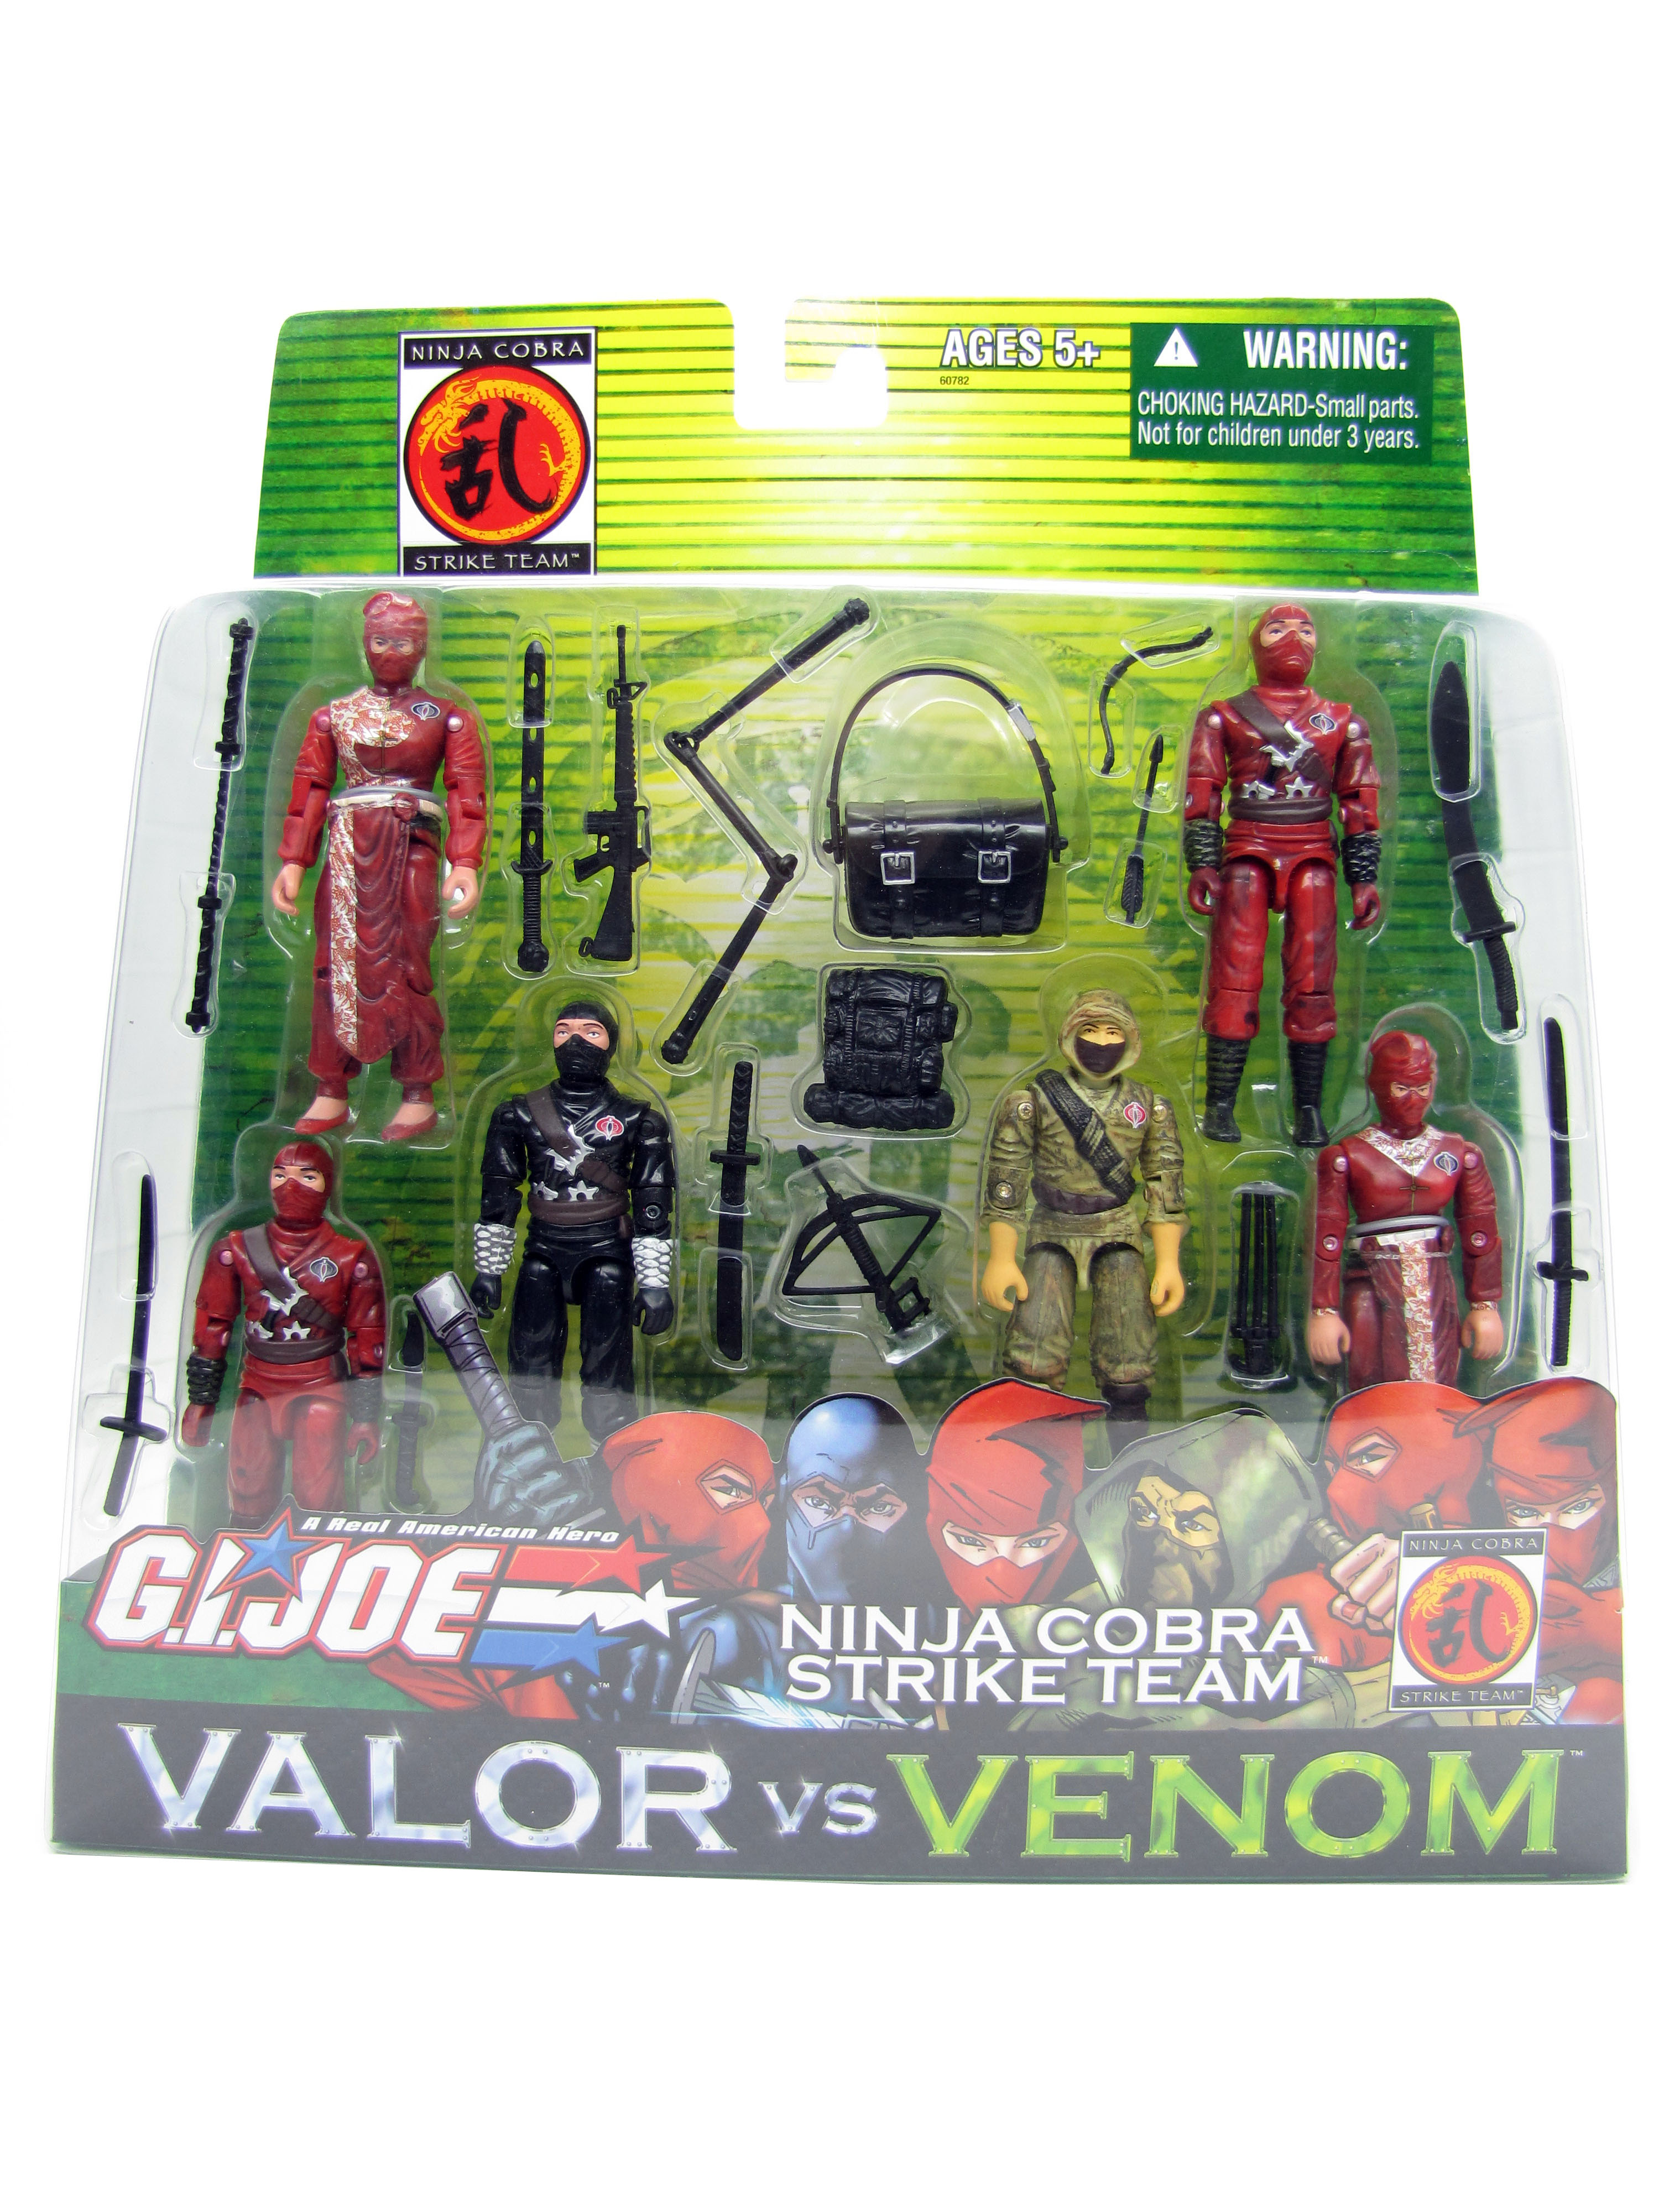 2004 GIJoe COBRA NINJA STRIKE TEAM TRU Exclusive